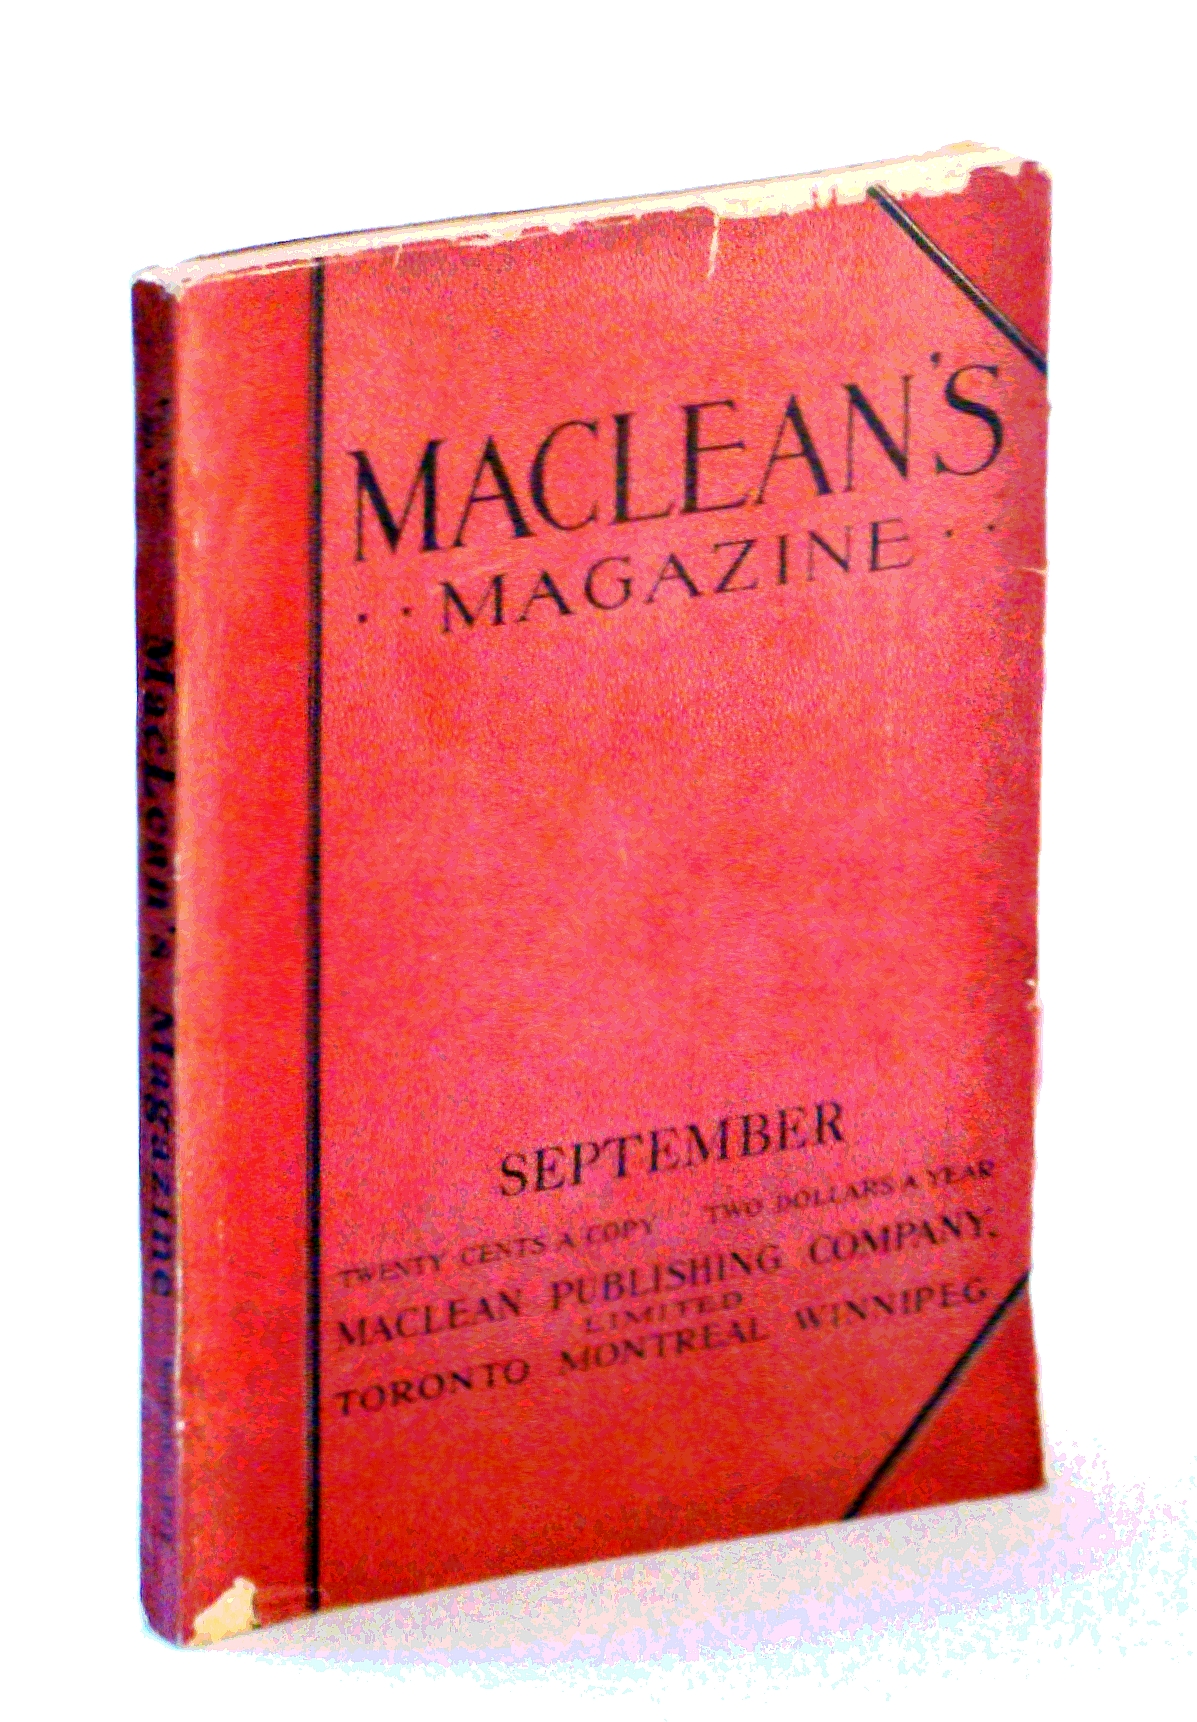 Image for Maclean's Magazine, September [Sept.] 1912, Vol. XXIV, No. 5 - The Frog in Canadian Diet